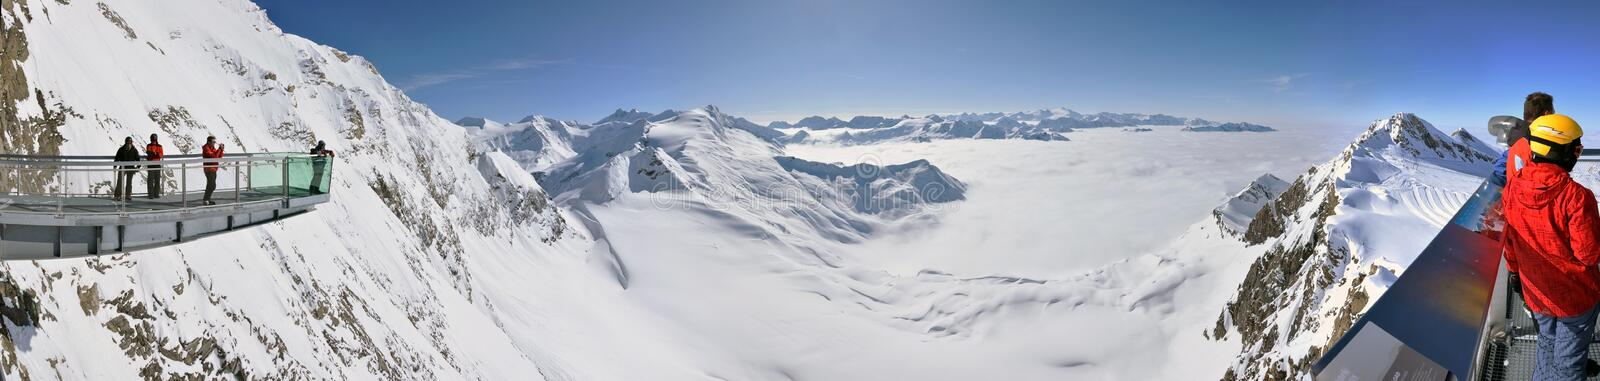 Winter panorama with skiers